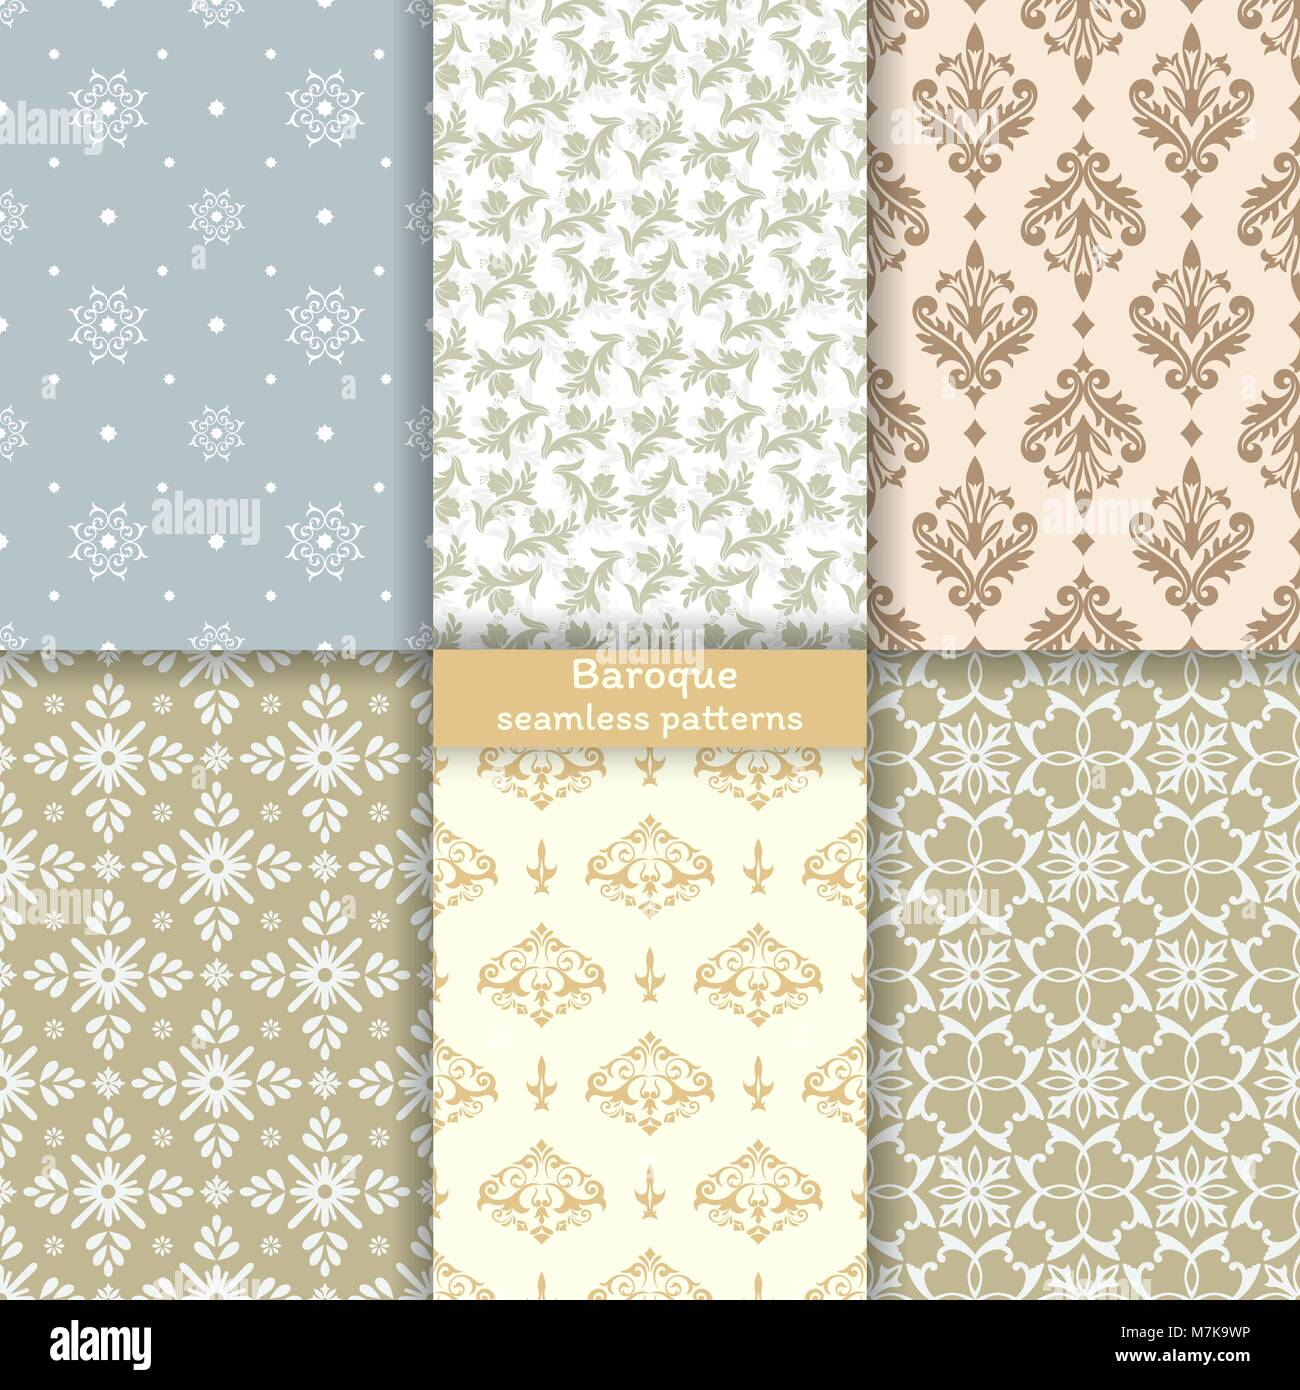 Seamless Baroque Patterns Imágenes De Stock & Seamless Baroque ...